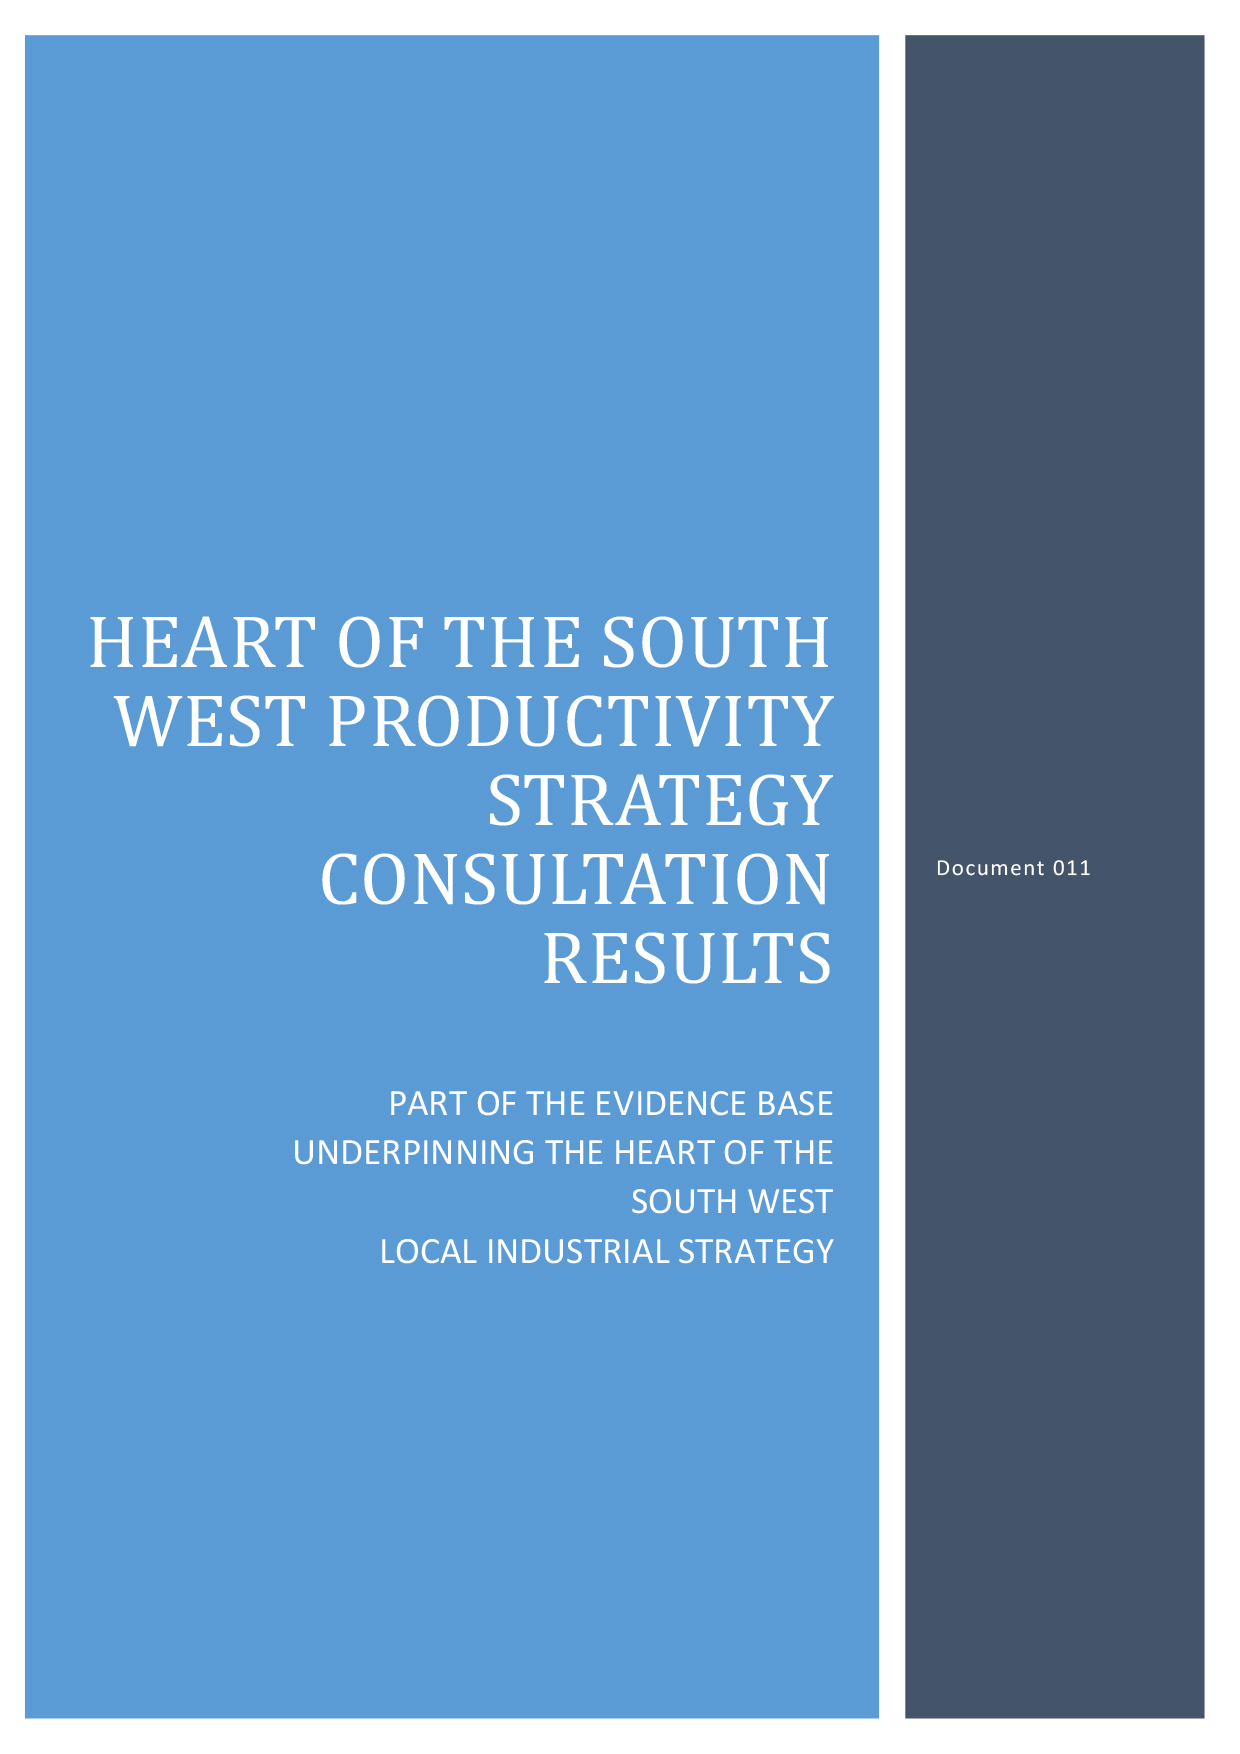 011 Heart of the South West Productivity Strate